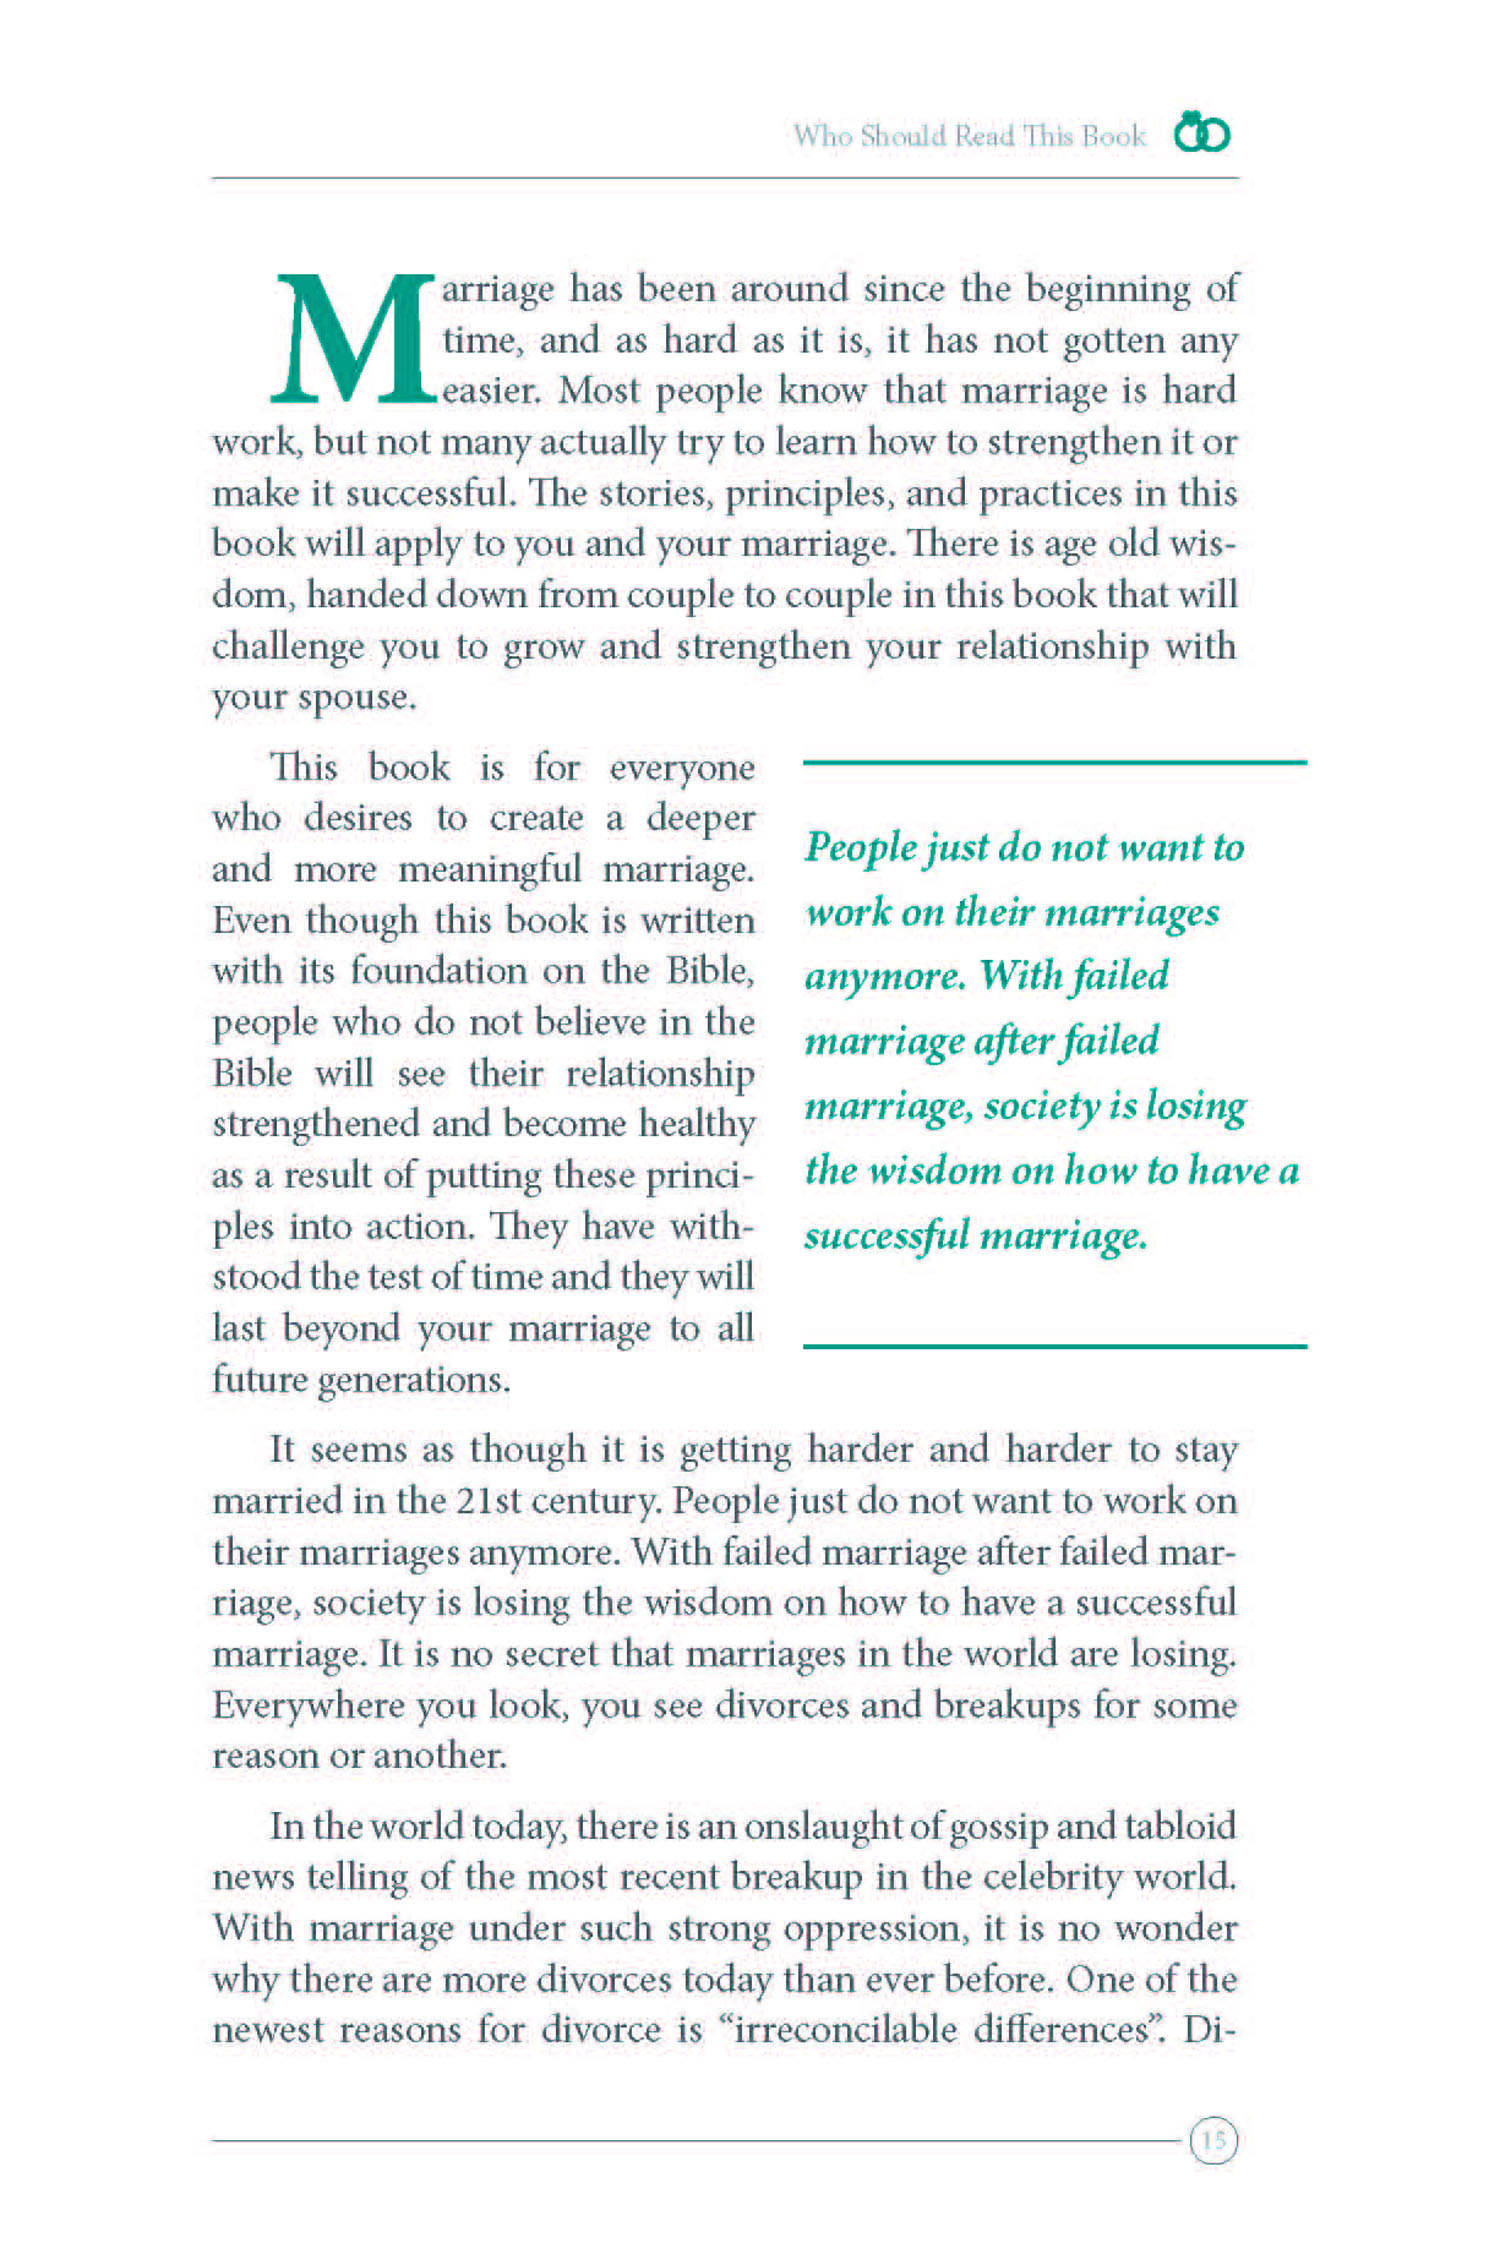 print_last_marriage_Page_015